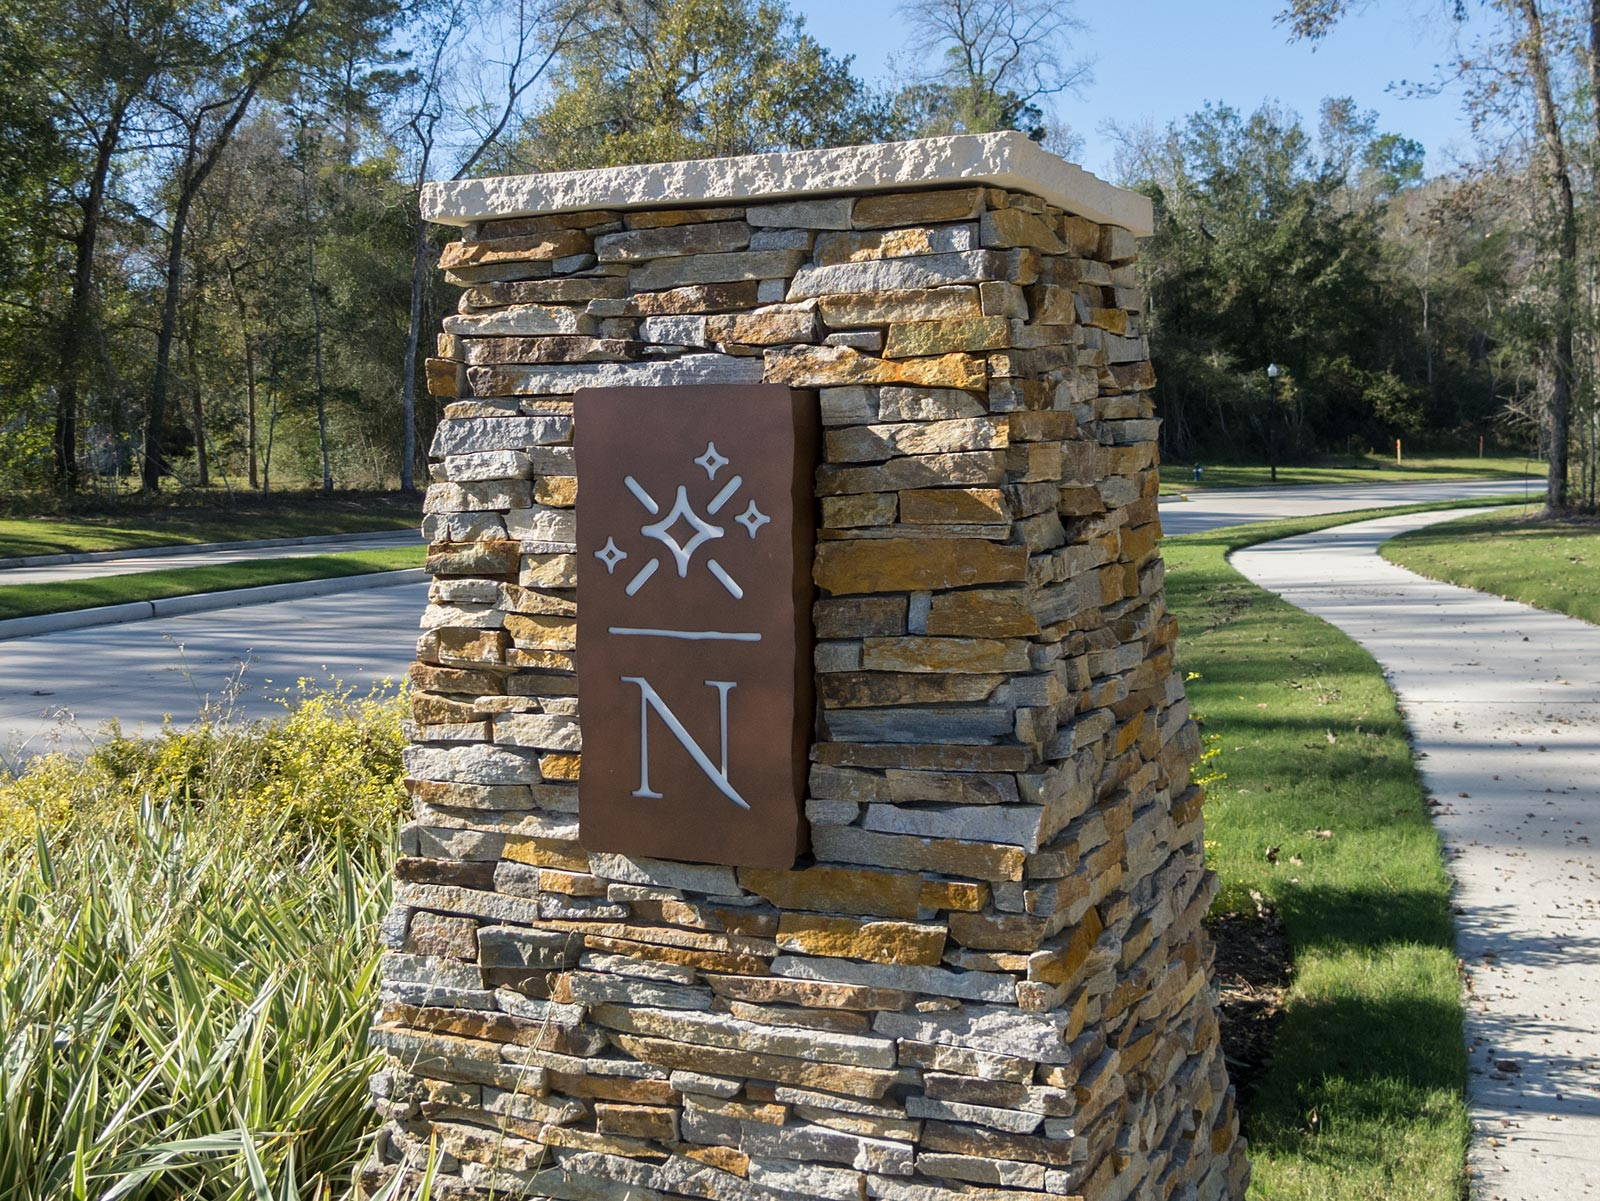 Close up of internally illuminated column sconce with reverse cut graphics at the Northgrove Community.